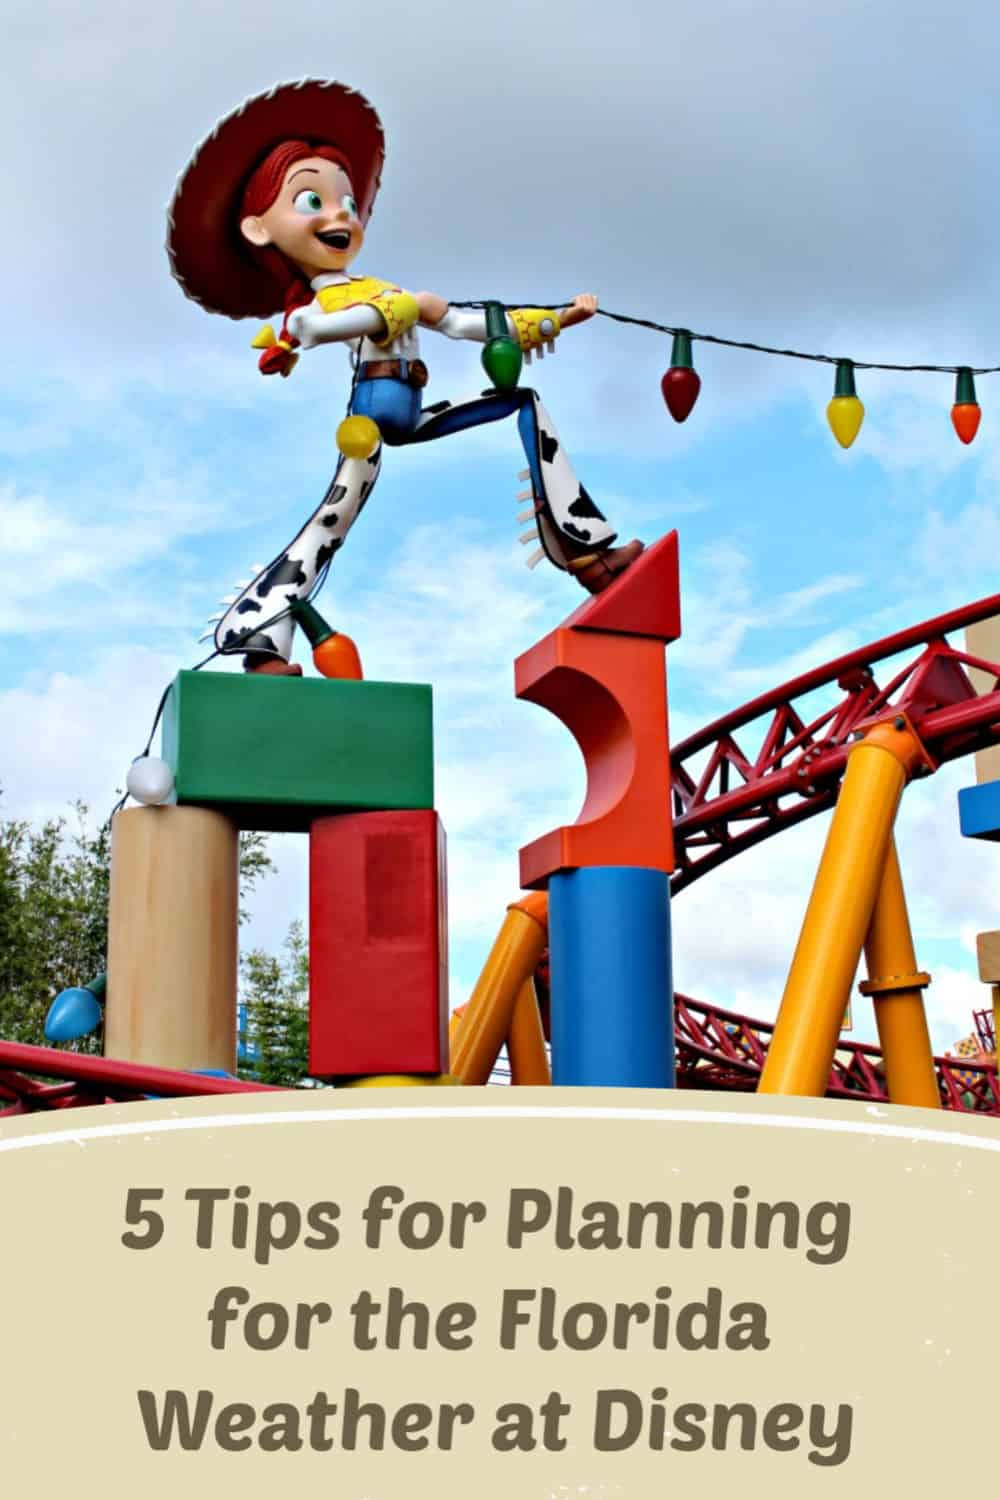 5 Tips for Planning for the Florida Weather at Disney - Florida weather doesn't have to ruin your Disney day. Find out how to plan for the weather.